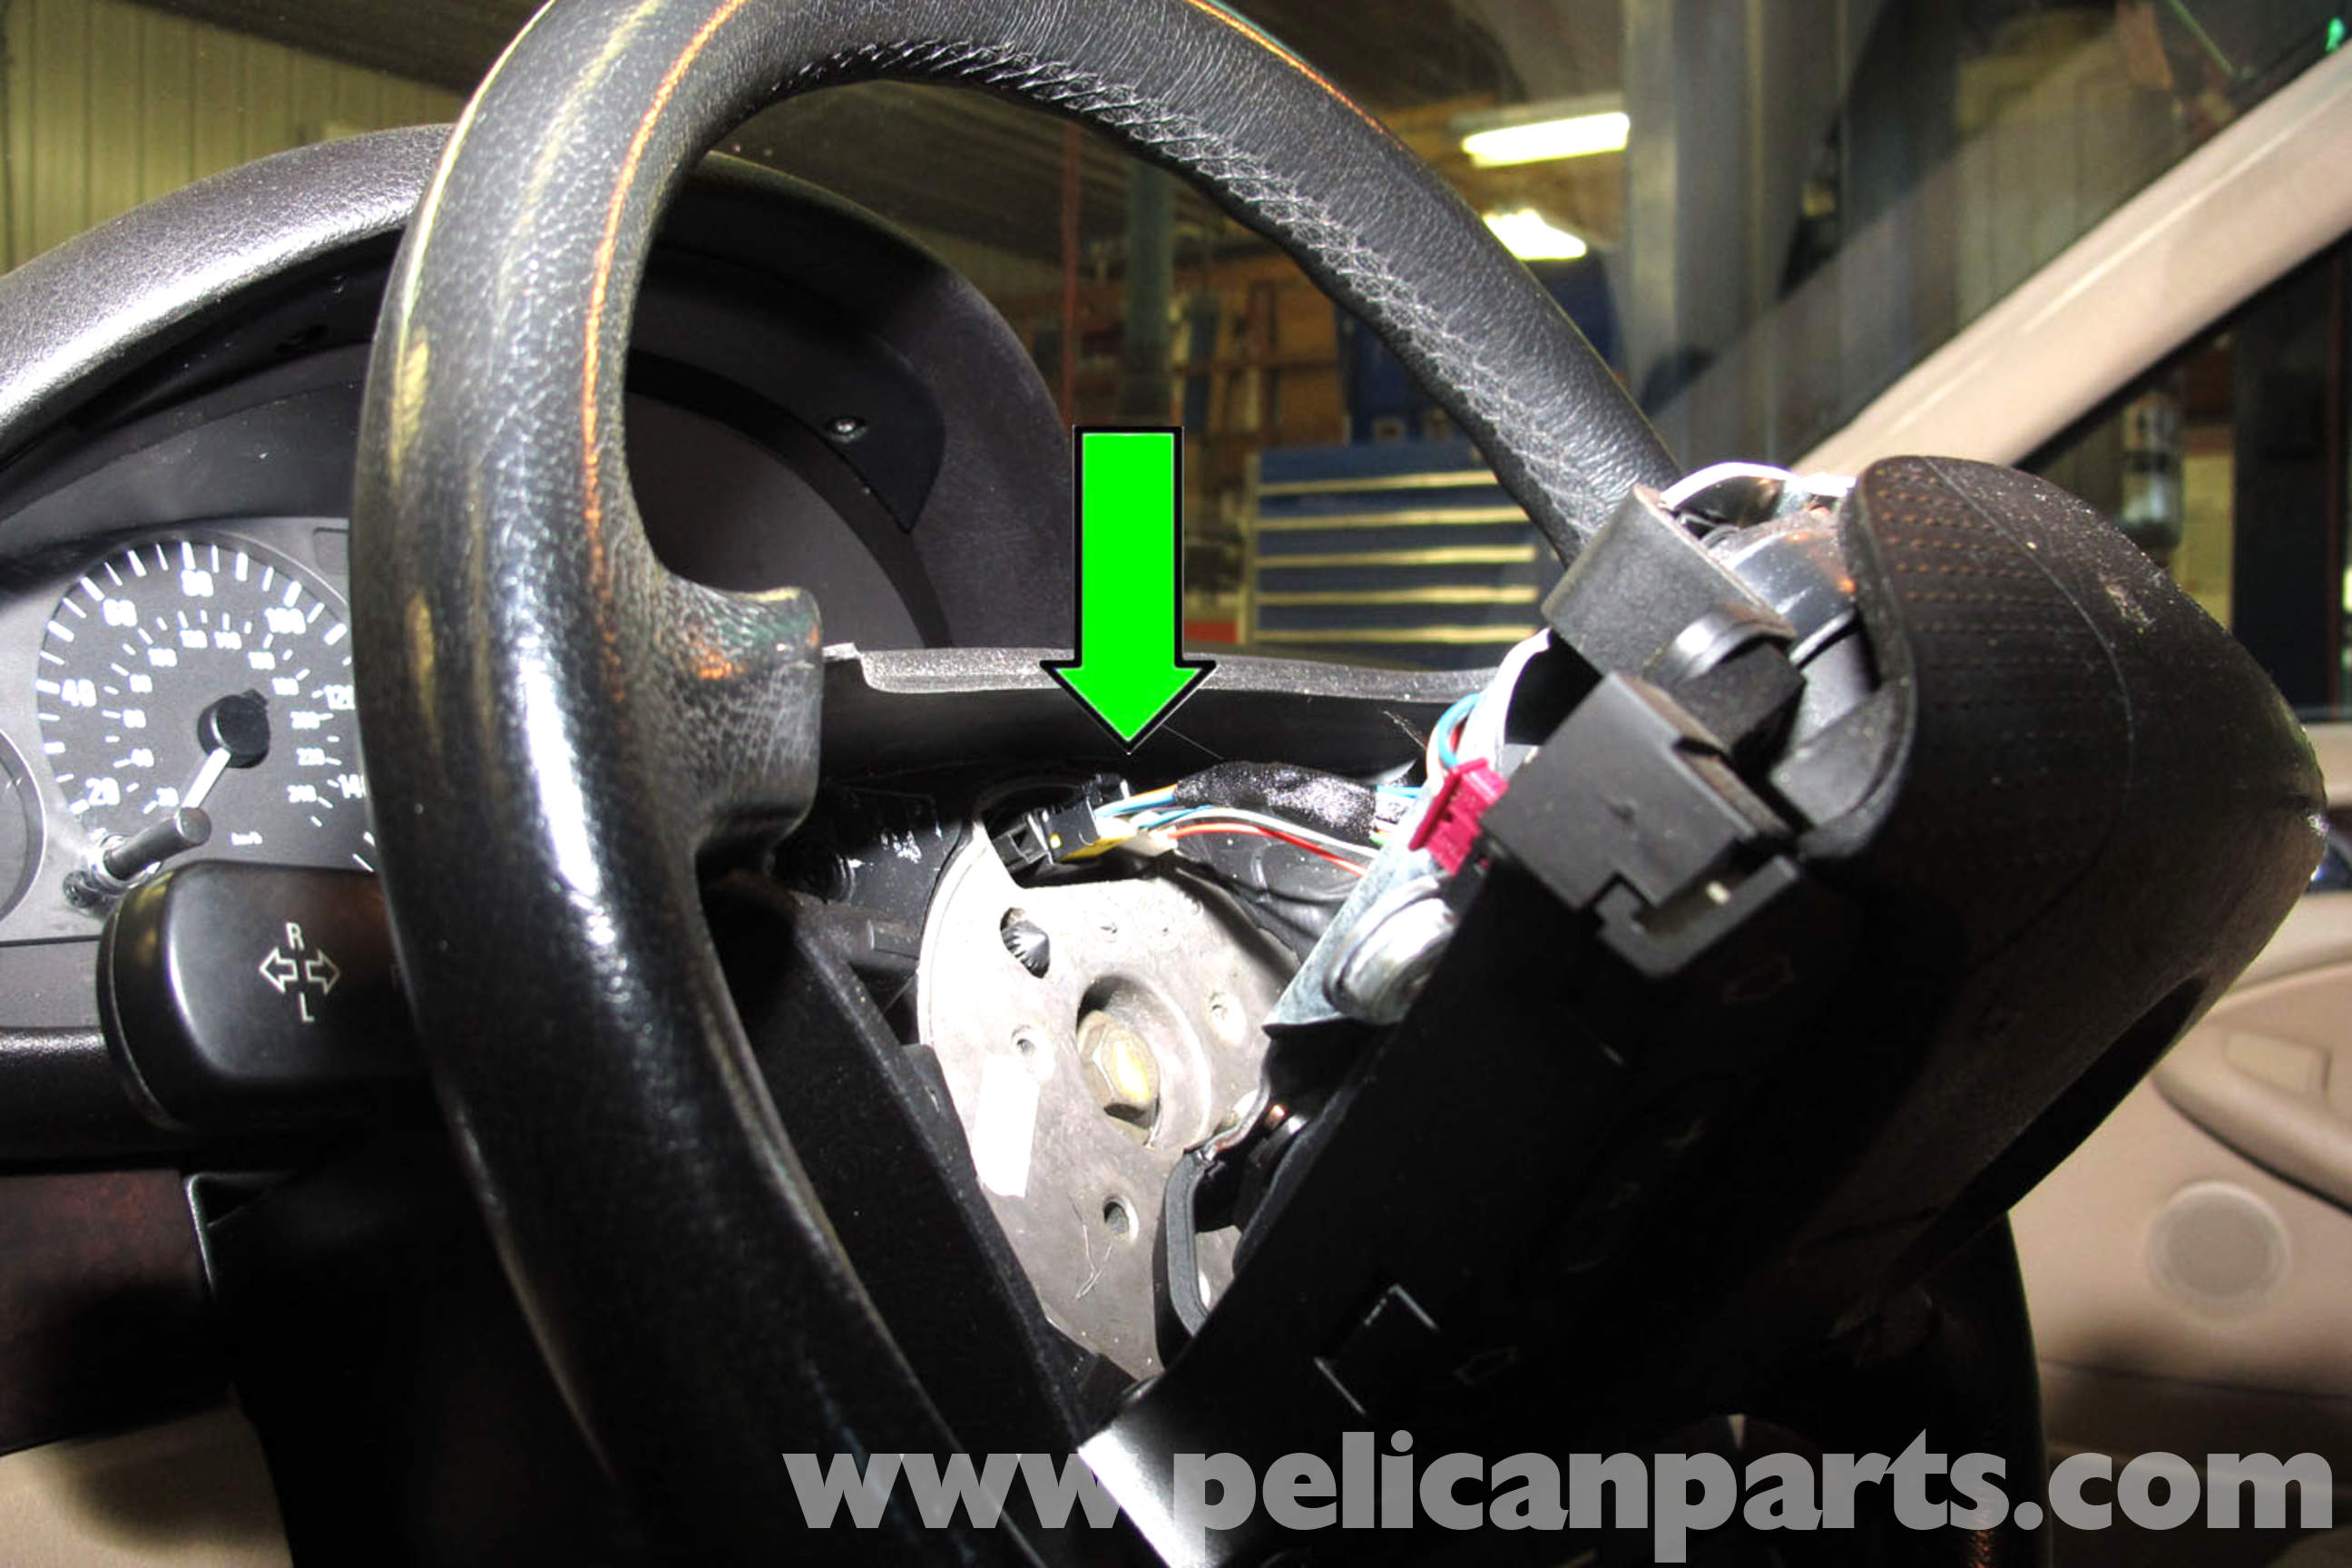 BMW E46 Steering Wheel and Airbag Replacement | BMW 325i (2001-2005